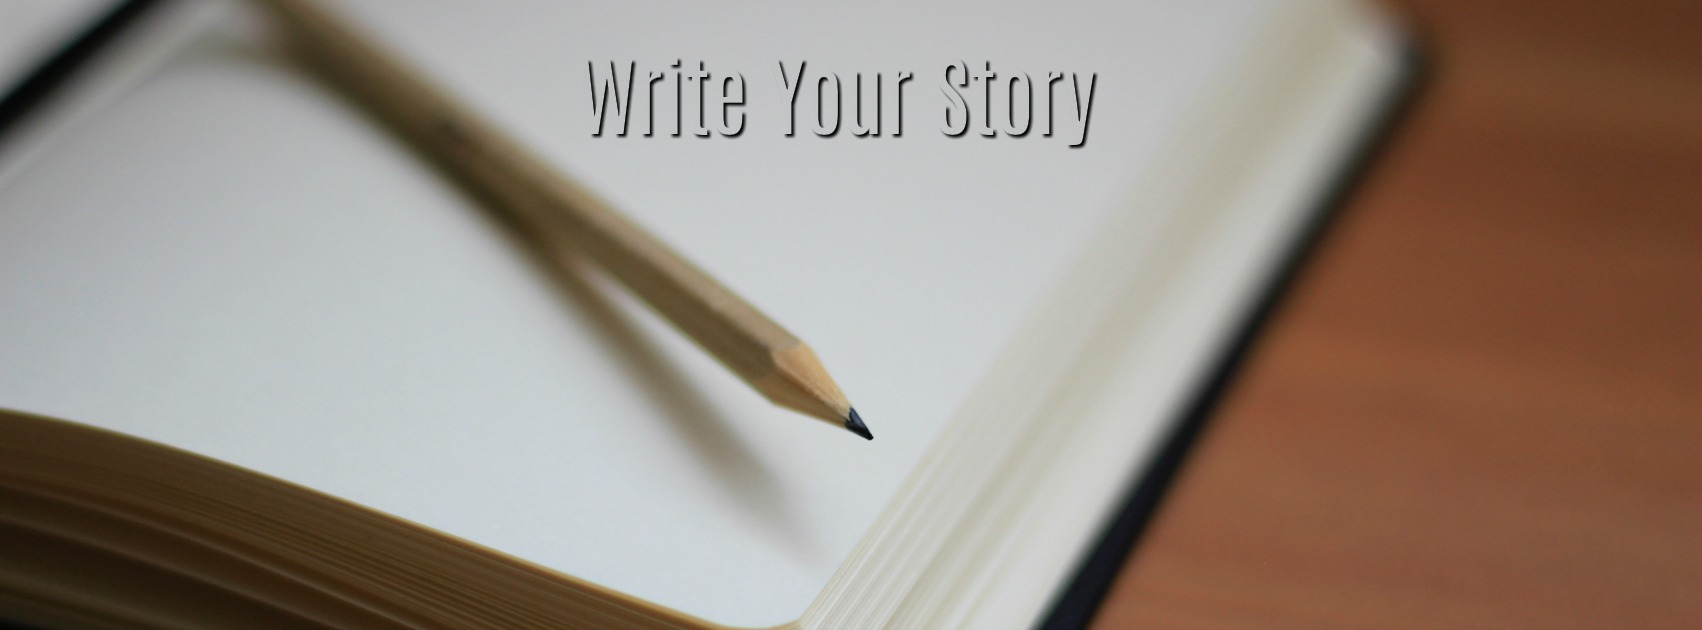 Write Your Story - jan-kahanek-184676